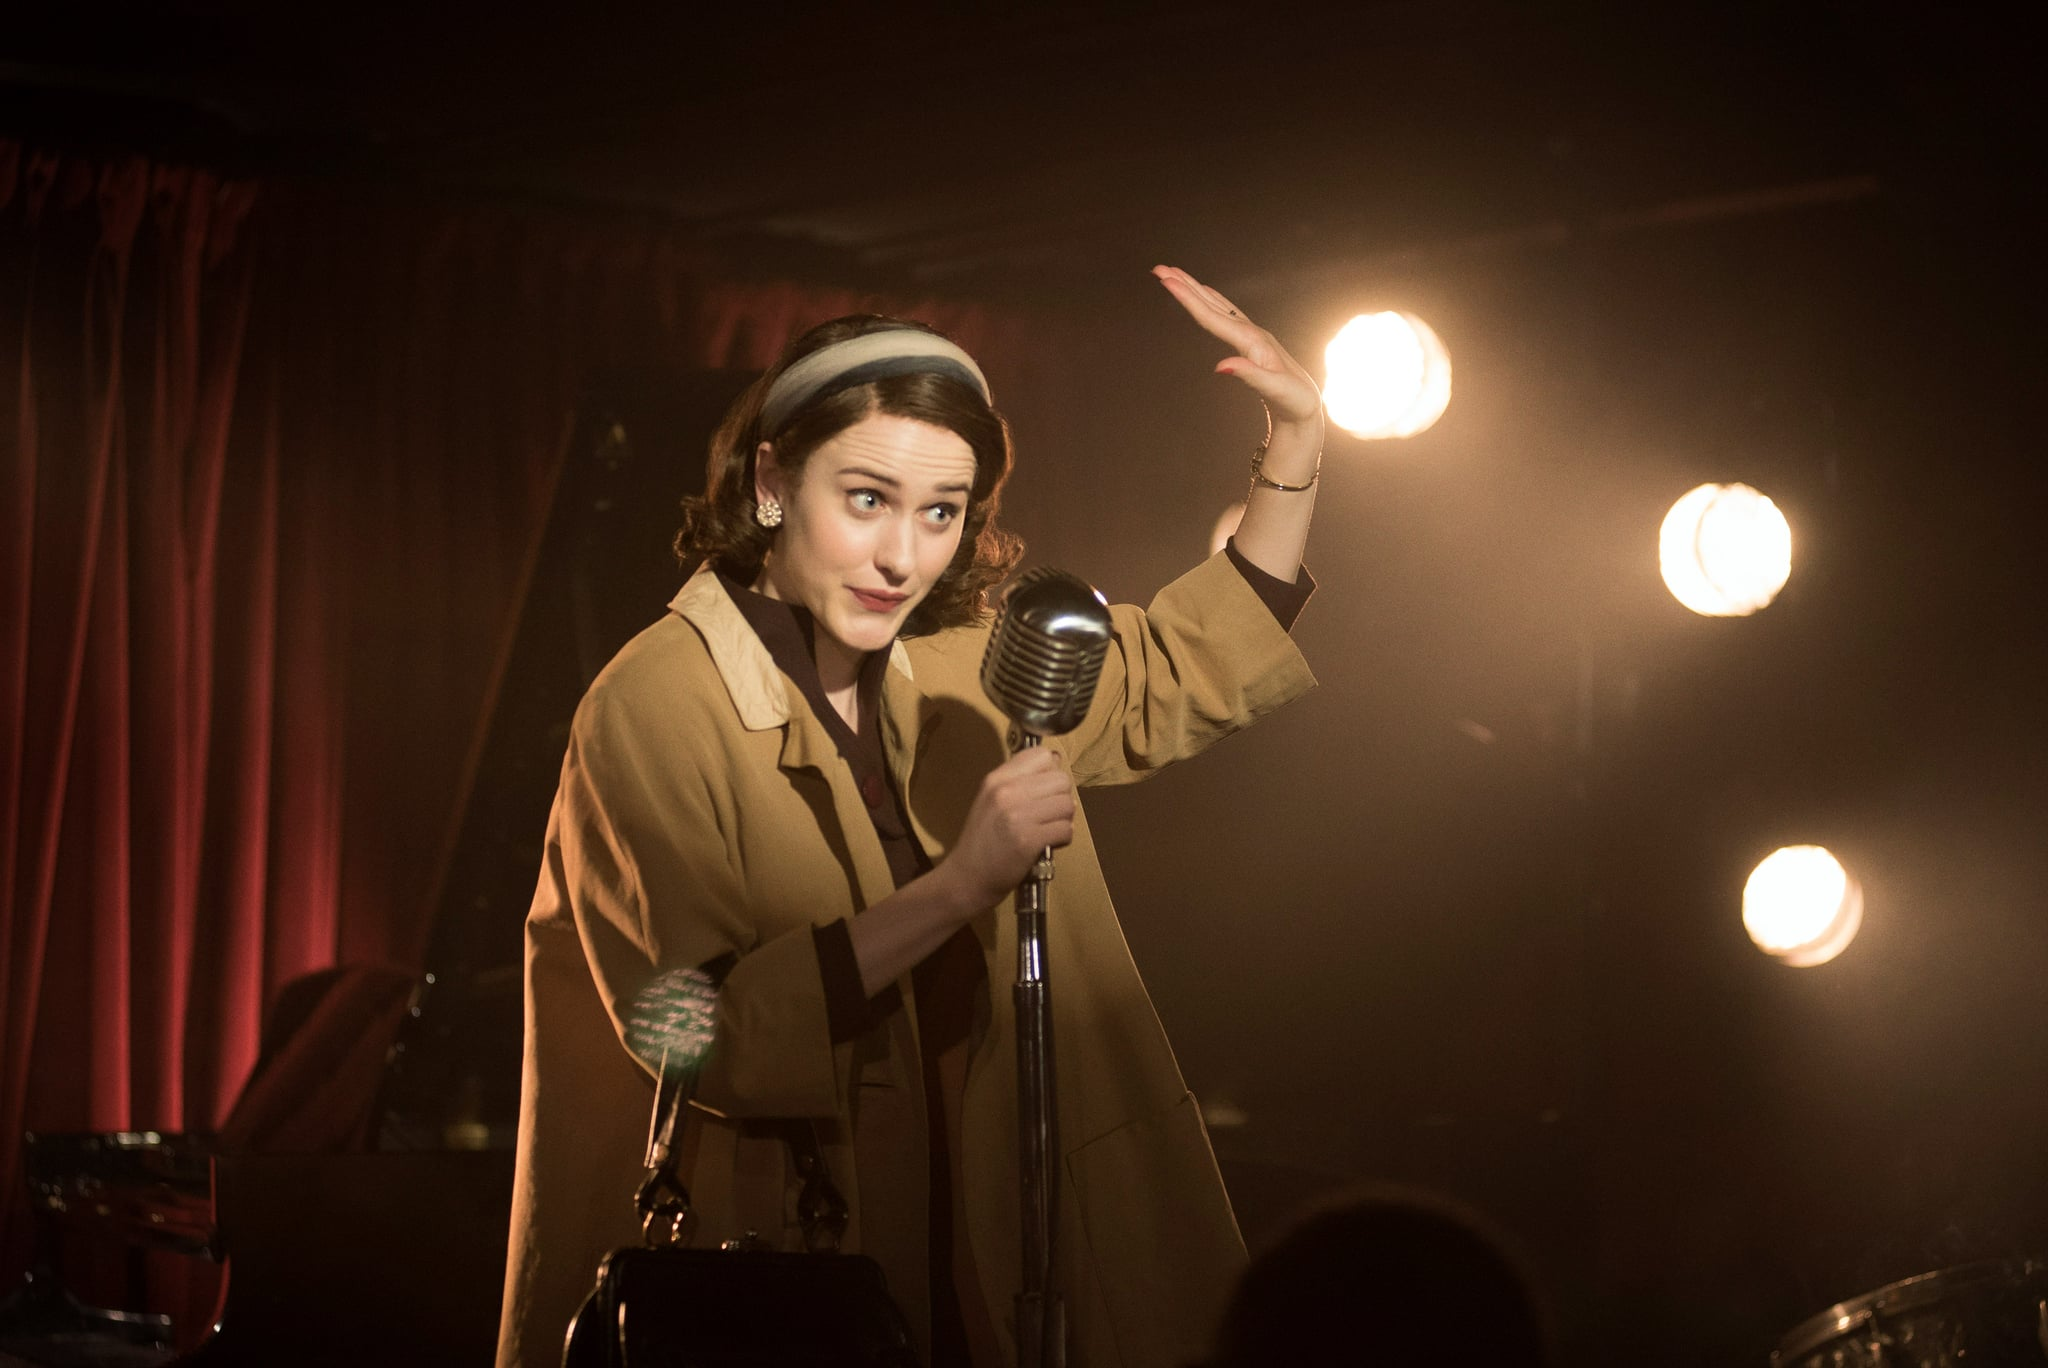 THE MARVELOUS MRS. MAISEL, Rachel Brosnahan, 'Because You Left', (Season 1, ep. 103, aired November 29, 2017). photo: Nicole Rivelli / Amazon / courtesy Everett Collection